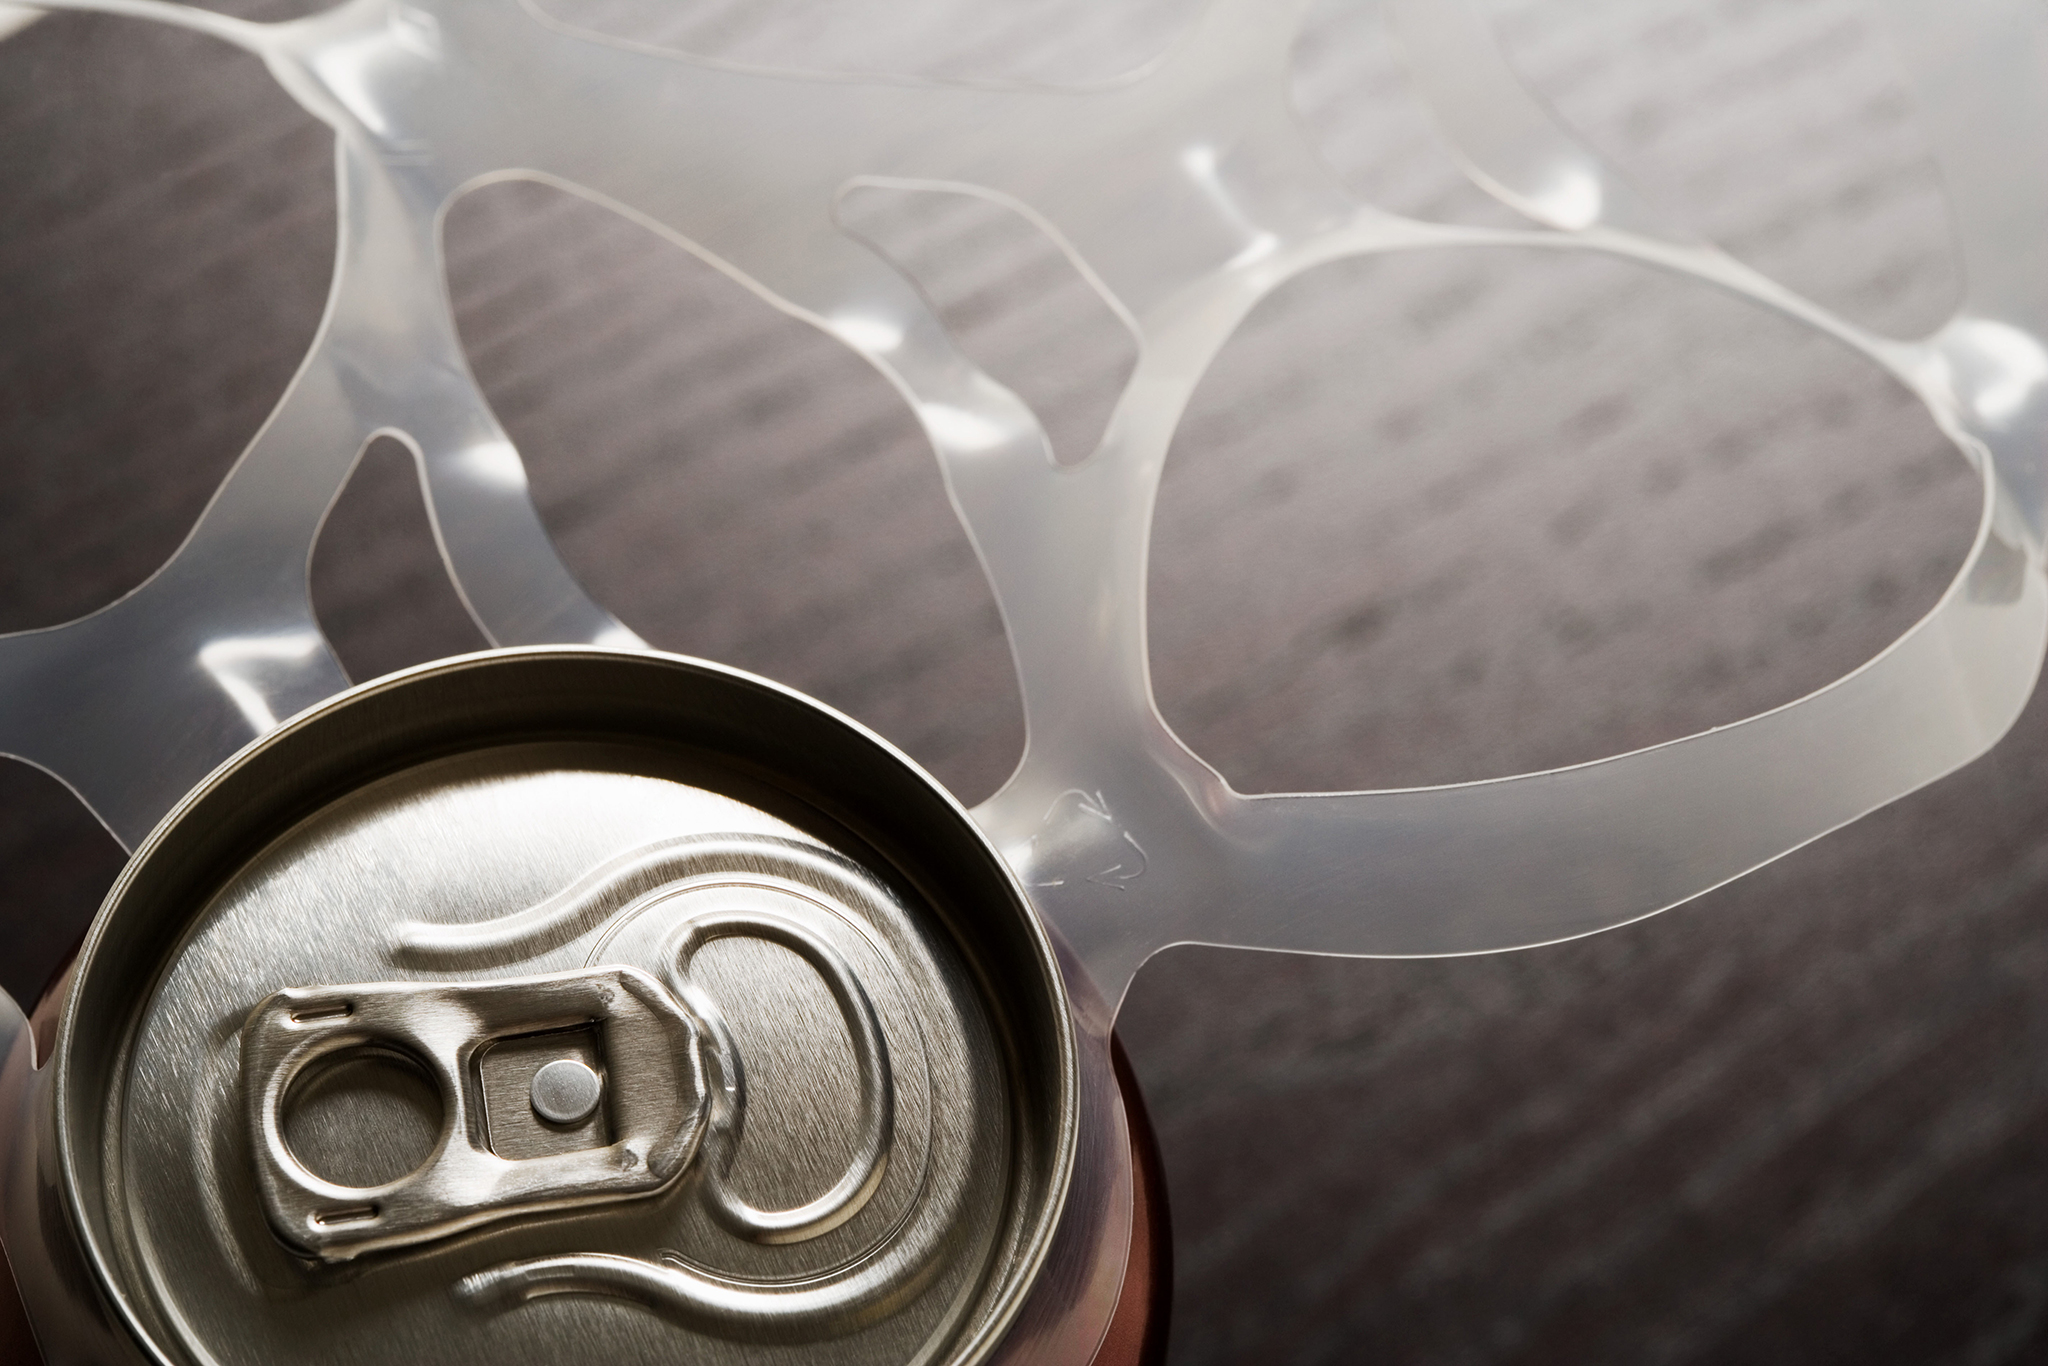 Heineken Plans To Switch To Cardboard From Plastic Ring Carriers